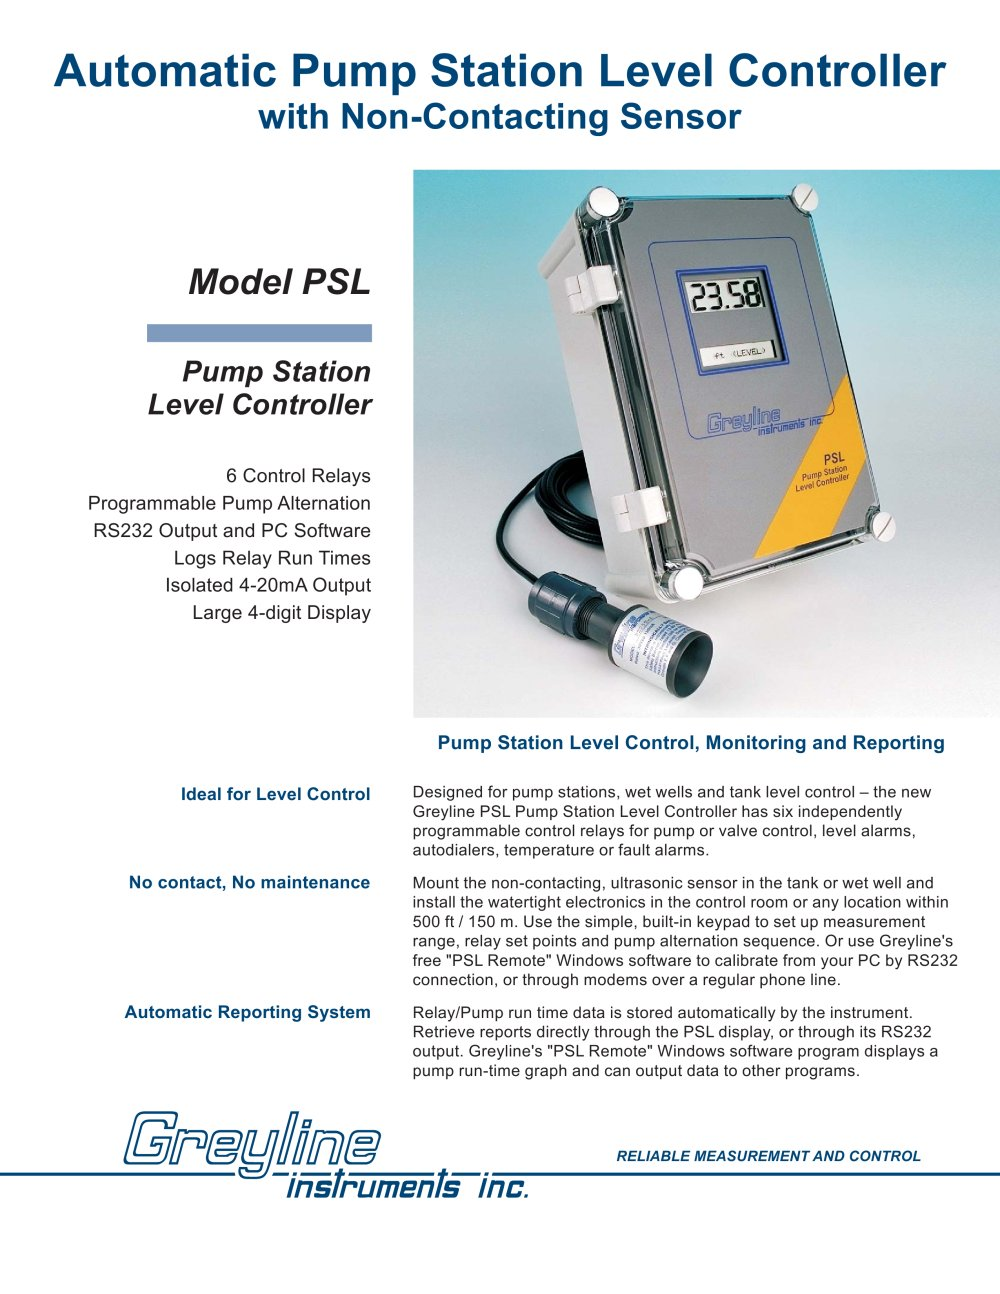 Psl Pump Station Level Controller Greyline Instruments Pdf Next The Four Relay Outputs From Remote Control Inbuilt Relays 1 4 Pages